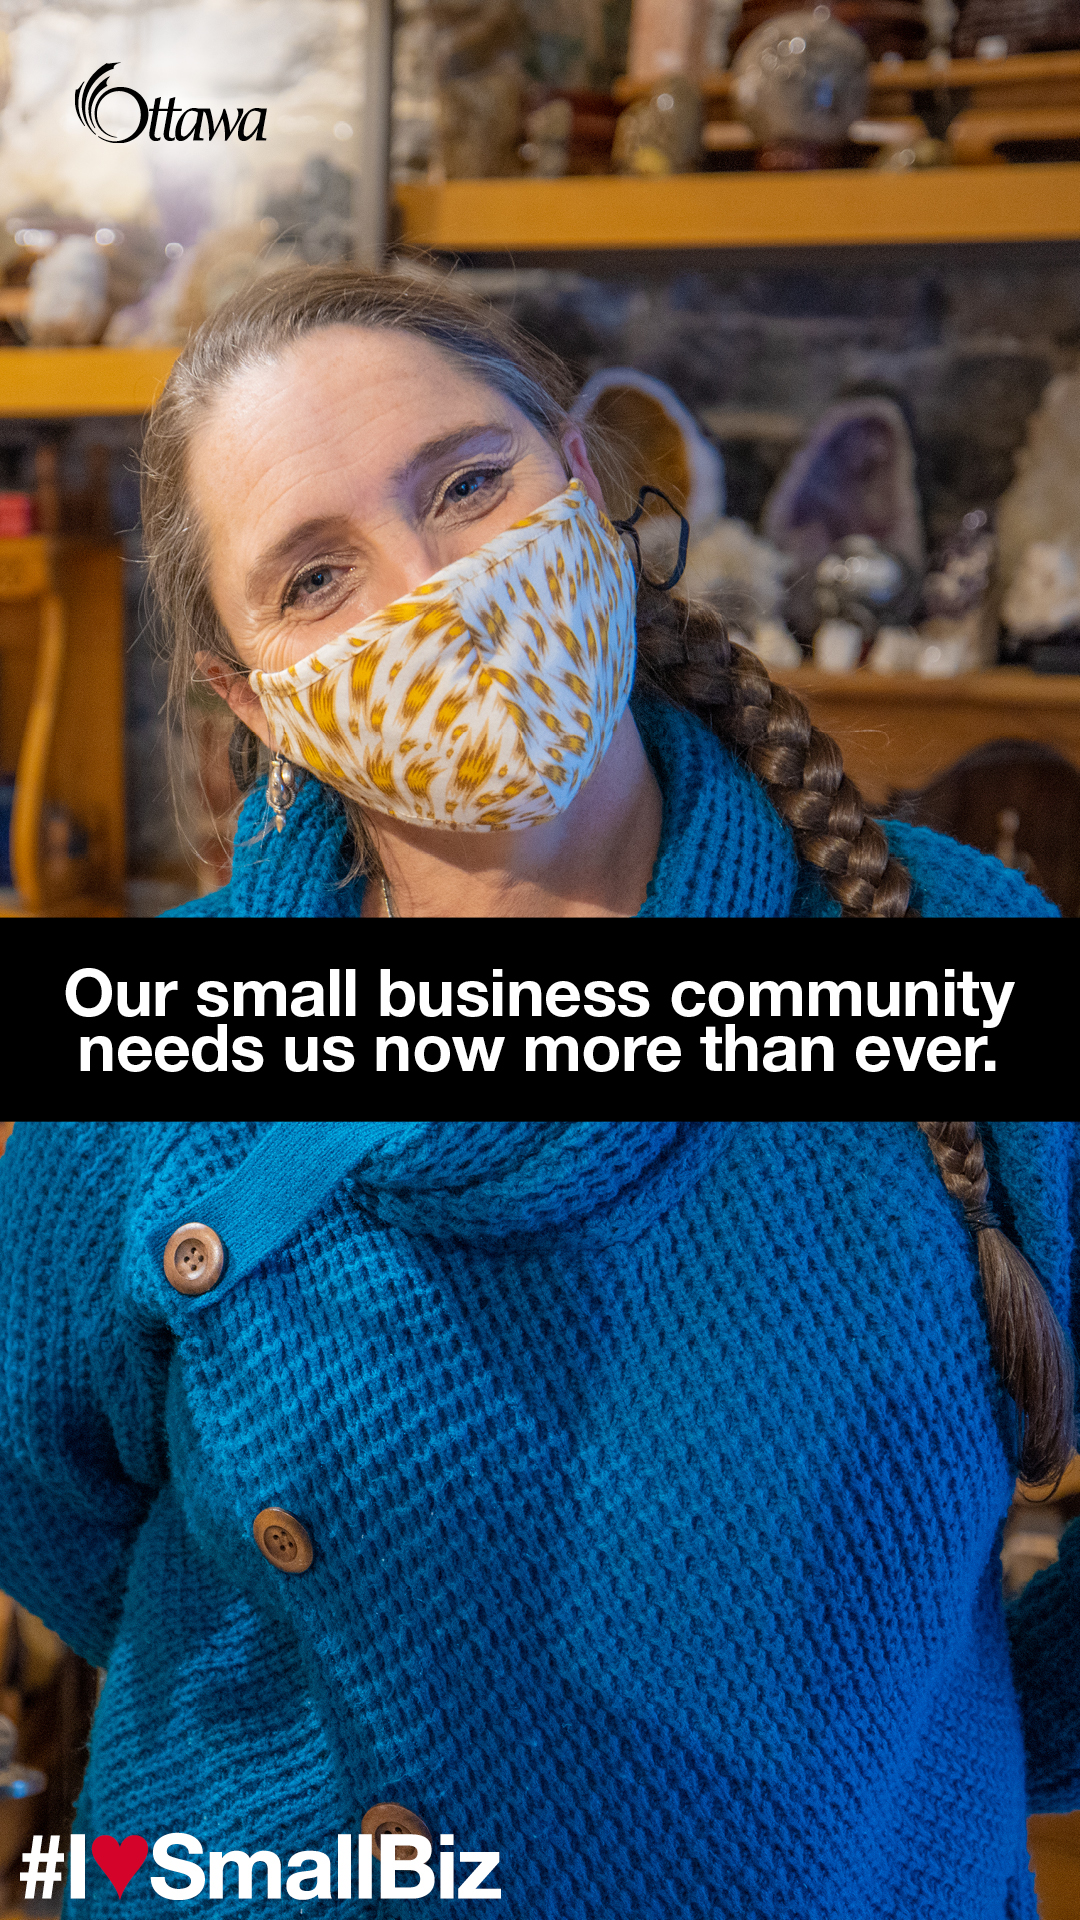 •	A woman wearing a mask stands in a small retail store. Our small business community needs us now more than ever.